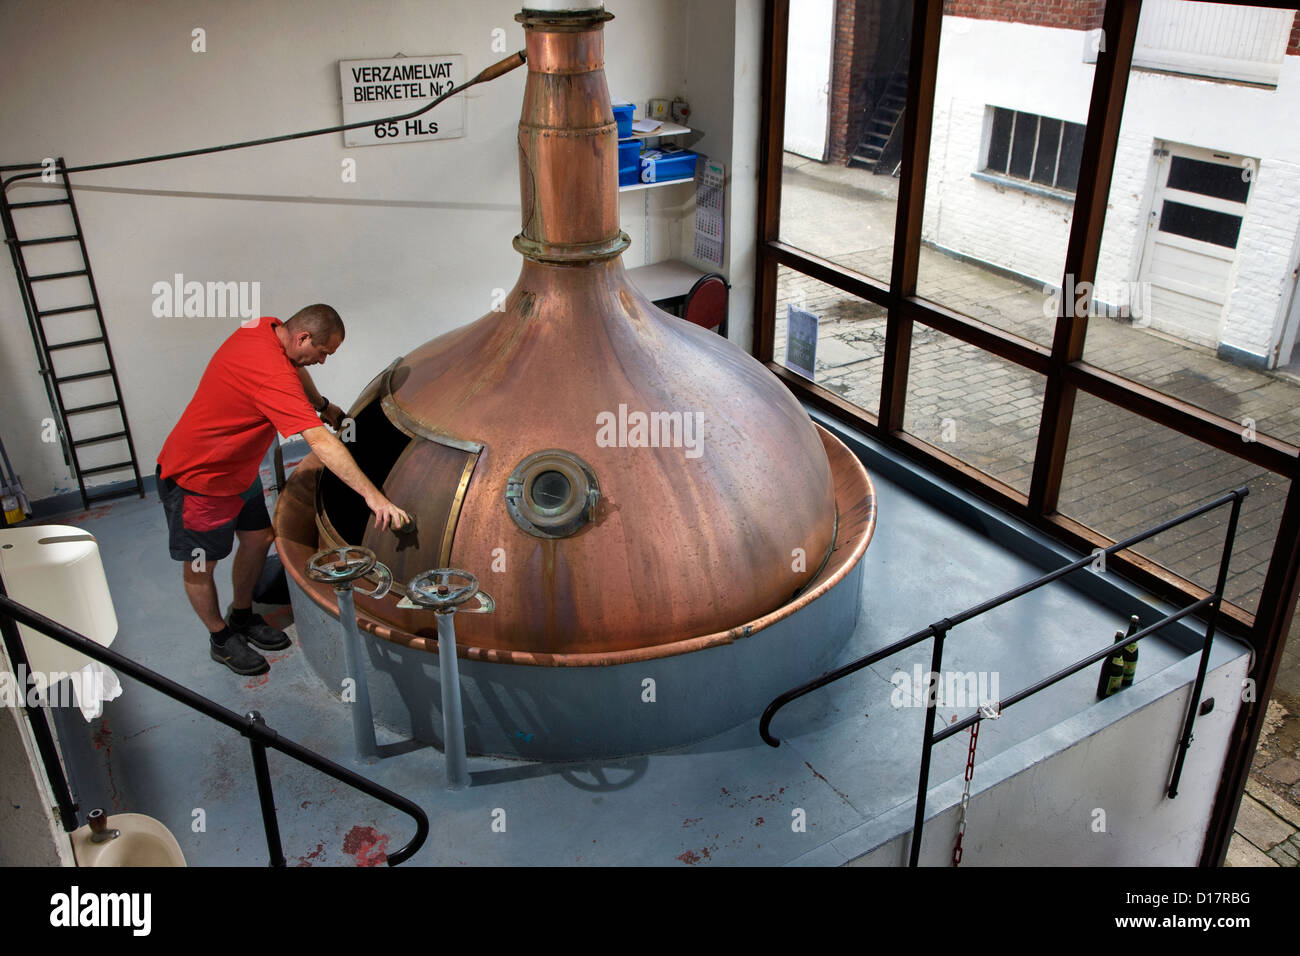 Brewer inspecting brass boil kettle in the Watou brewery near Poperinge, West Flanders, Belgium - Stock Image